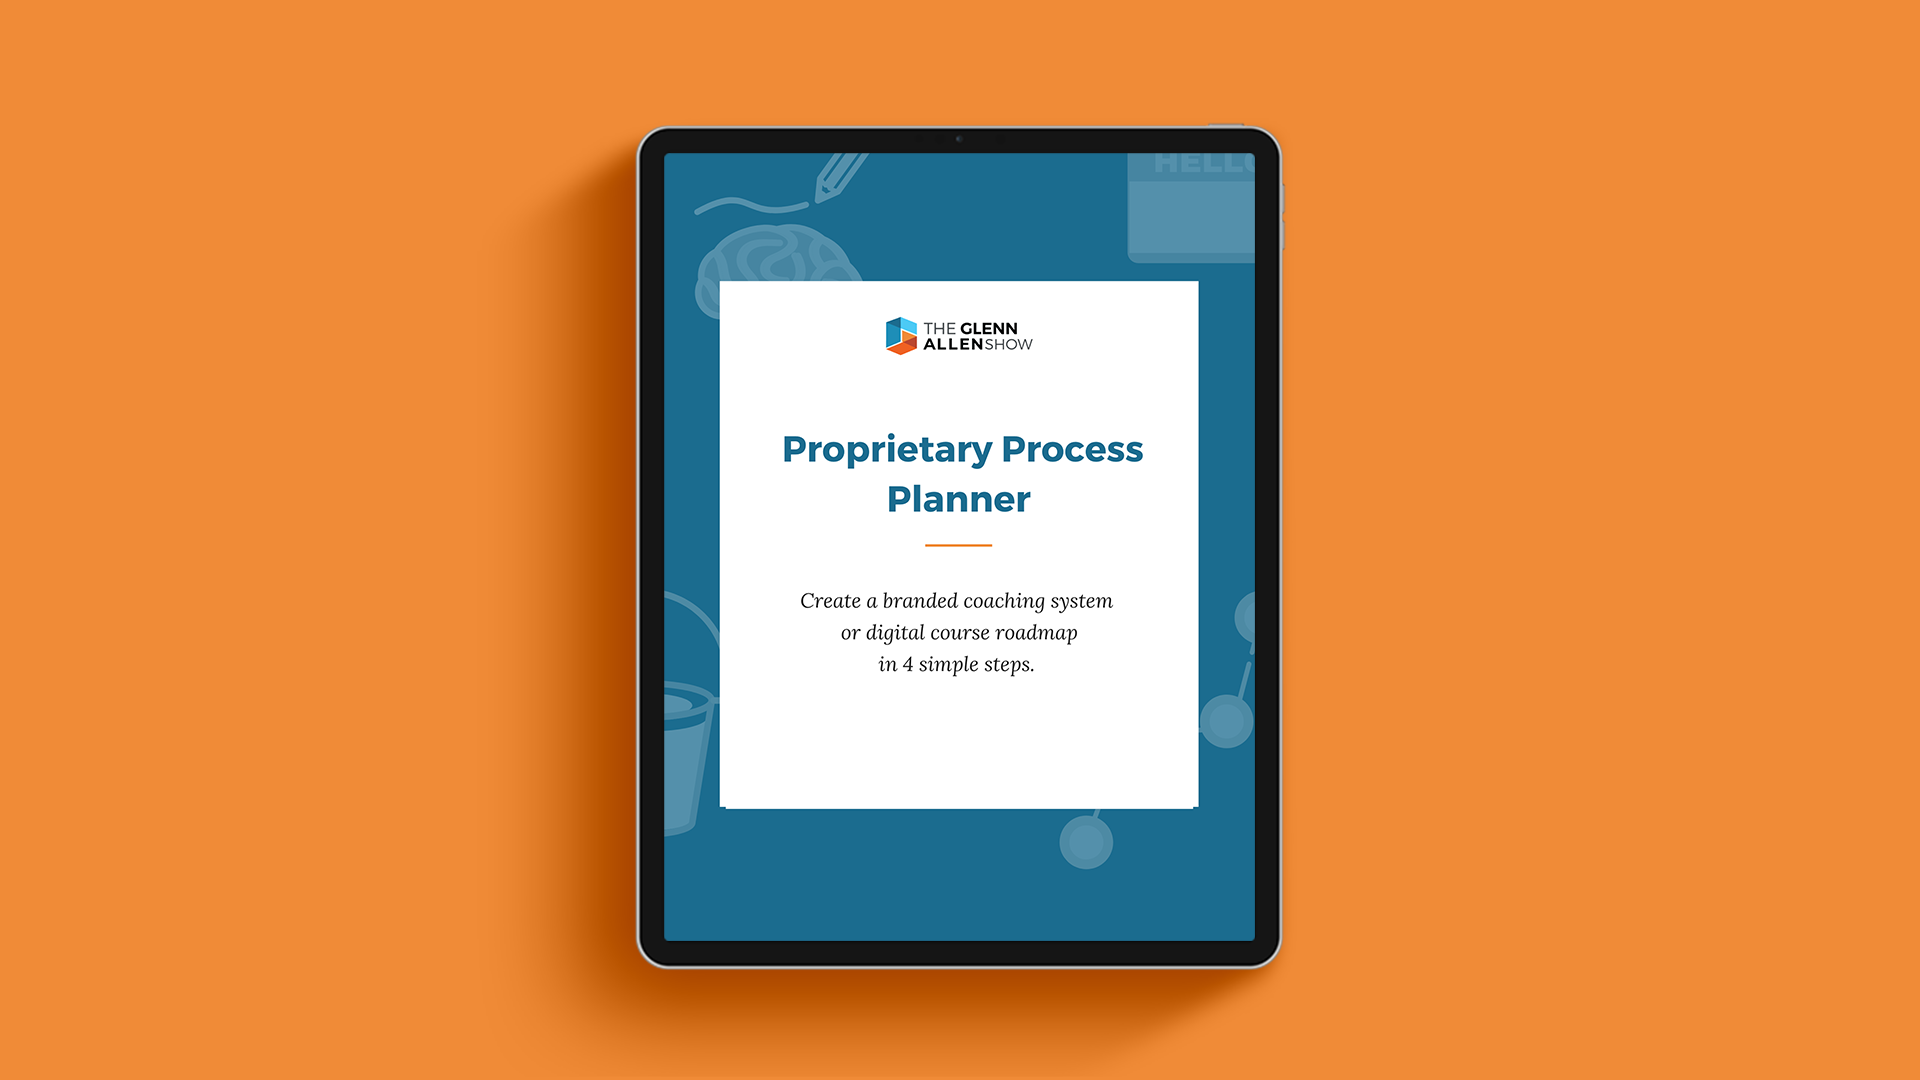 Proprietary Process Planner cover